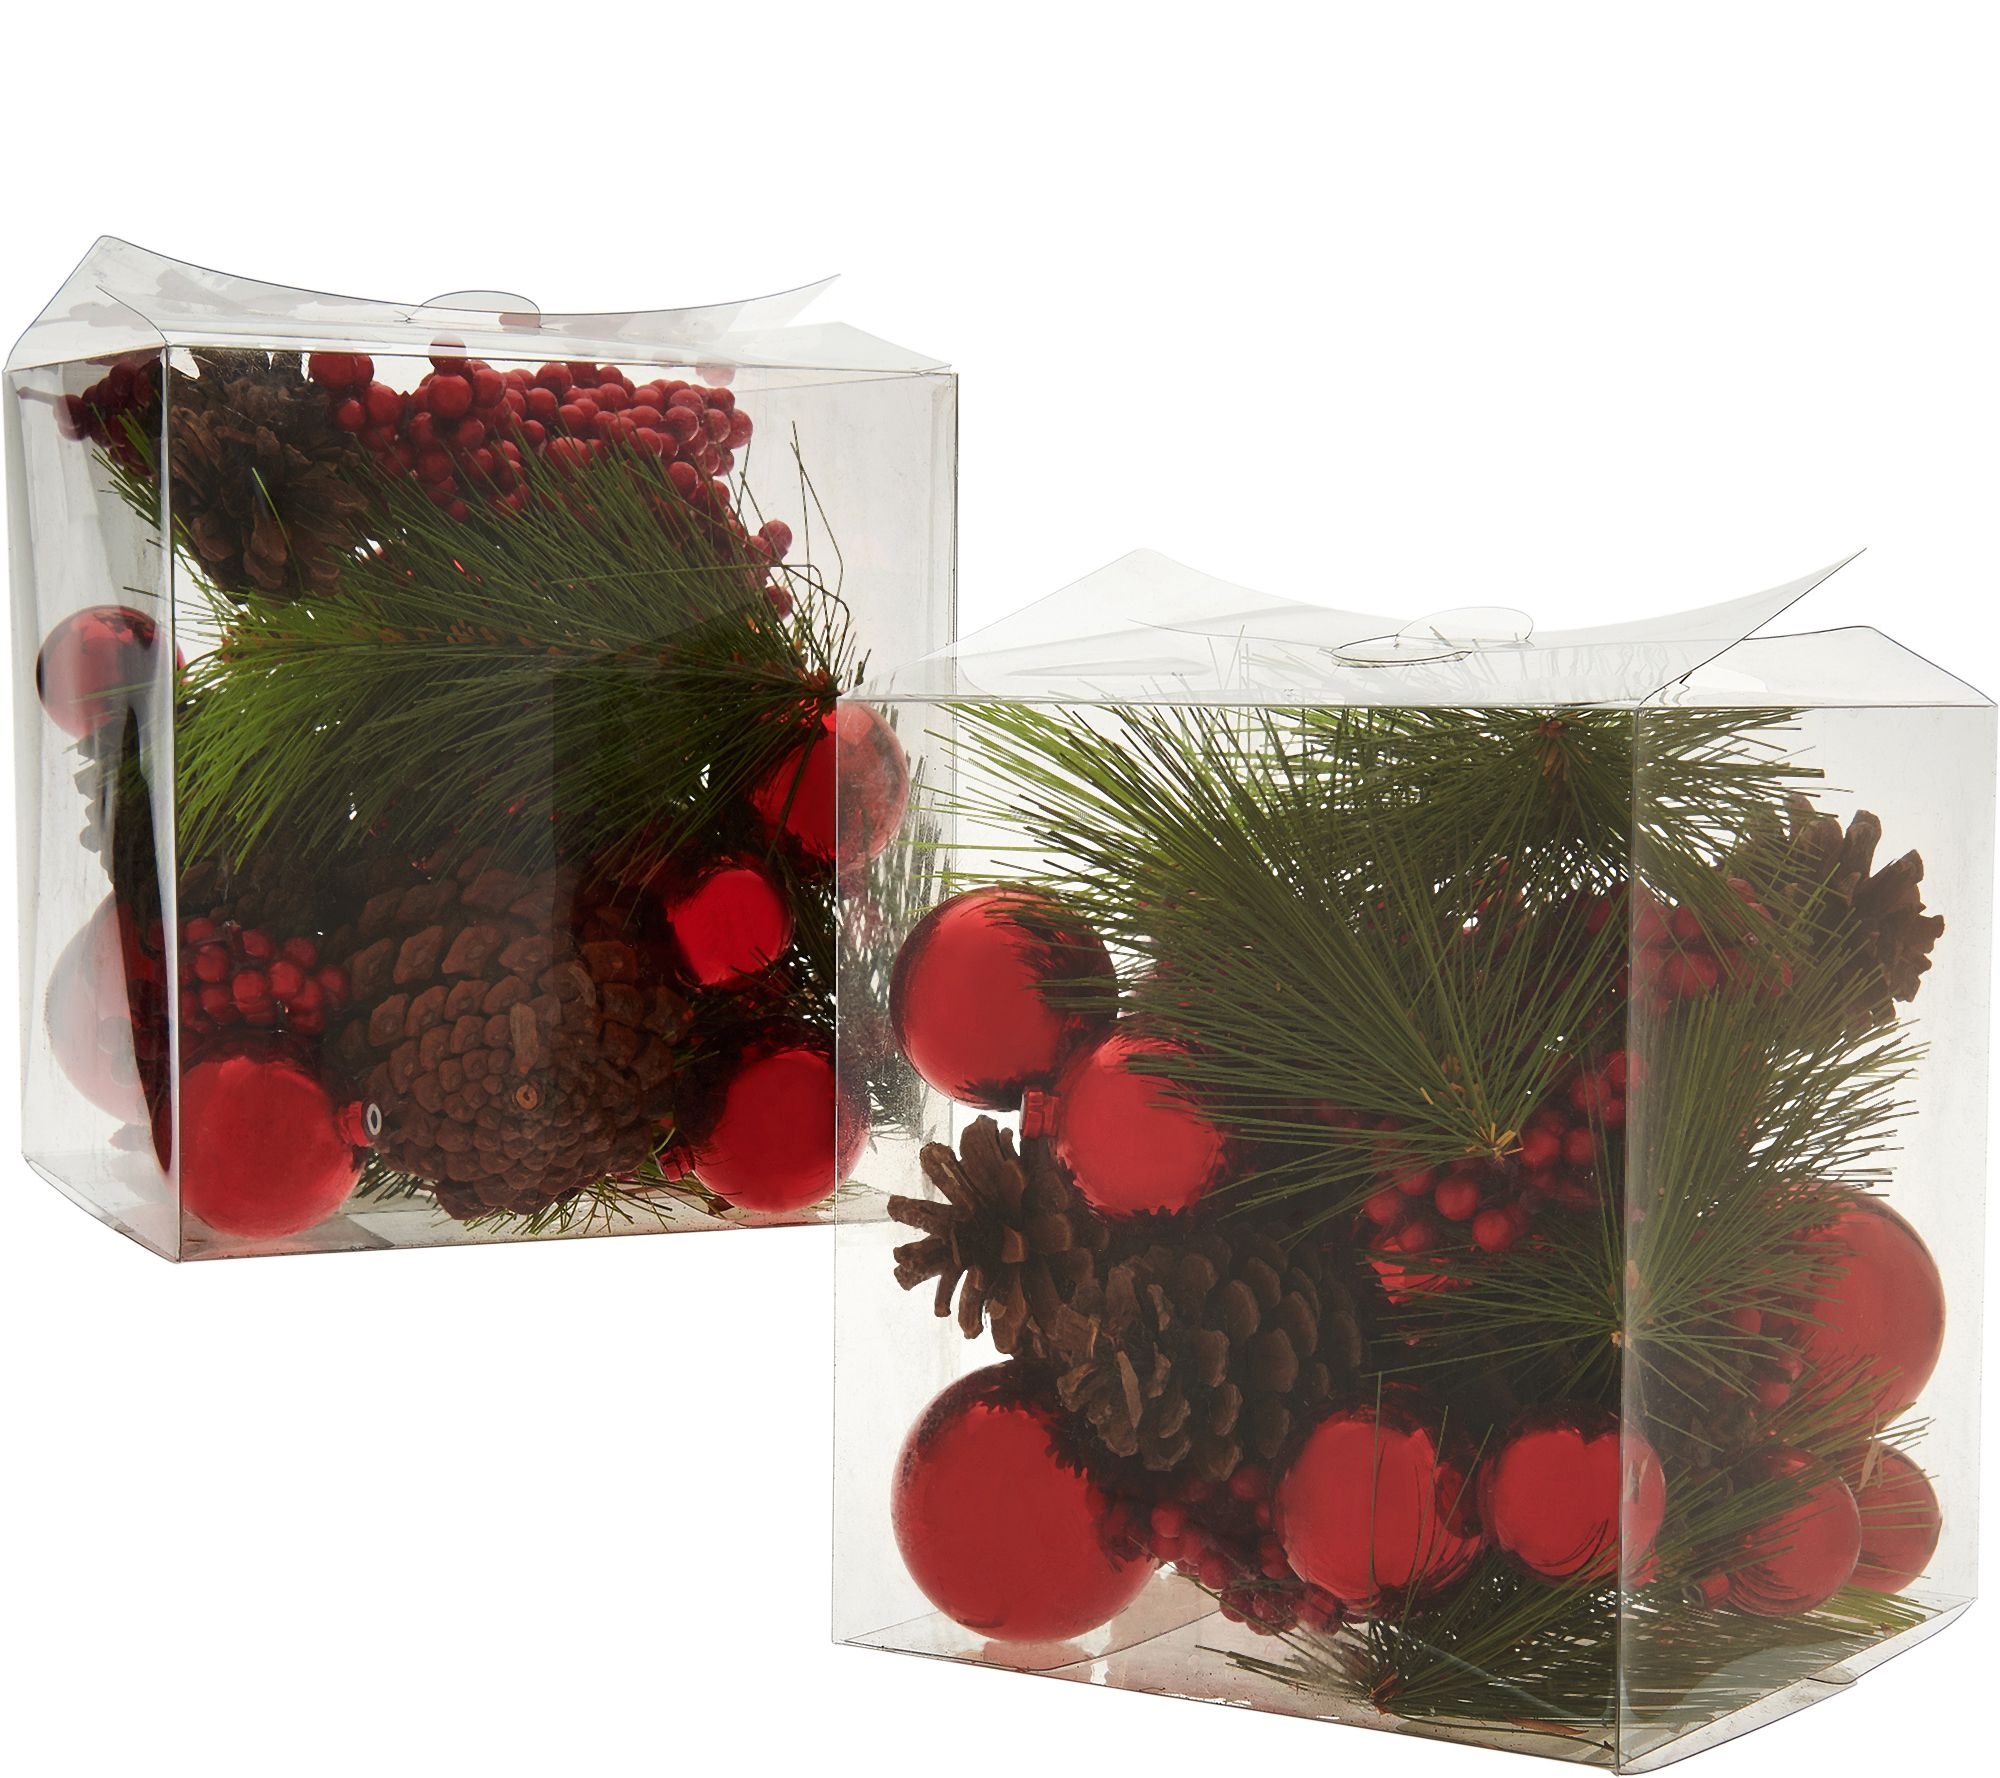 How to make a lighted christmas box decoration - Set Of 2 Decorative Mixed Filler Boxes By Valerie H211883